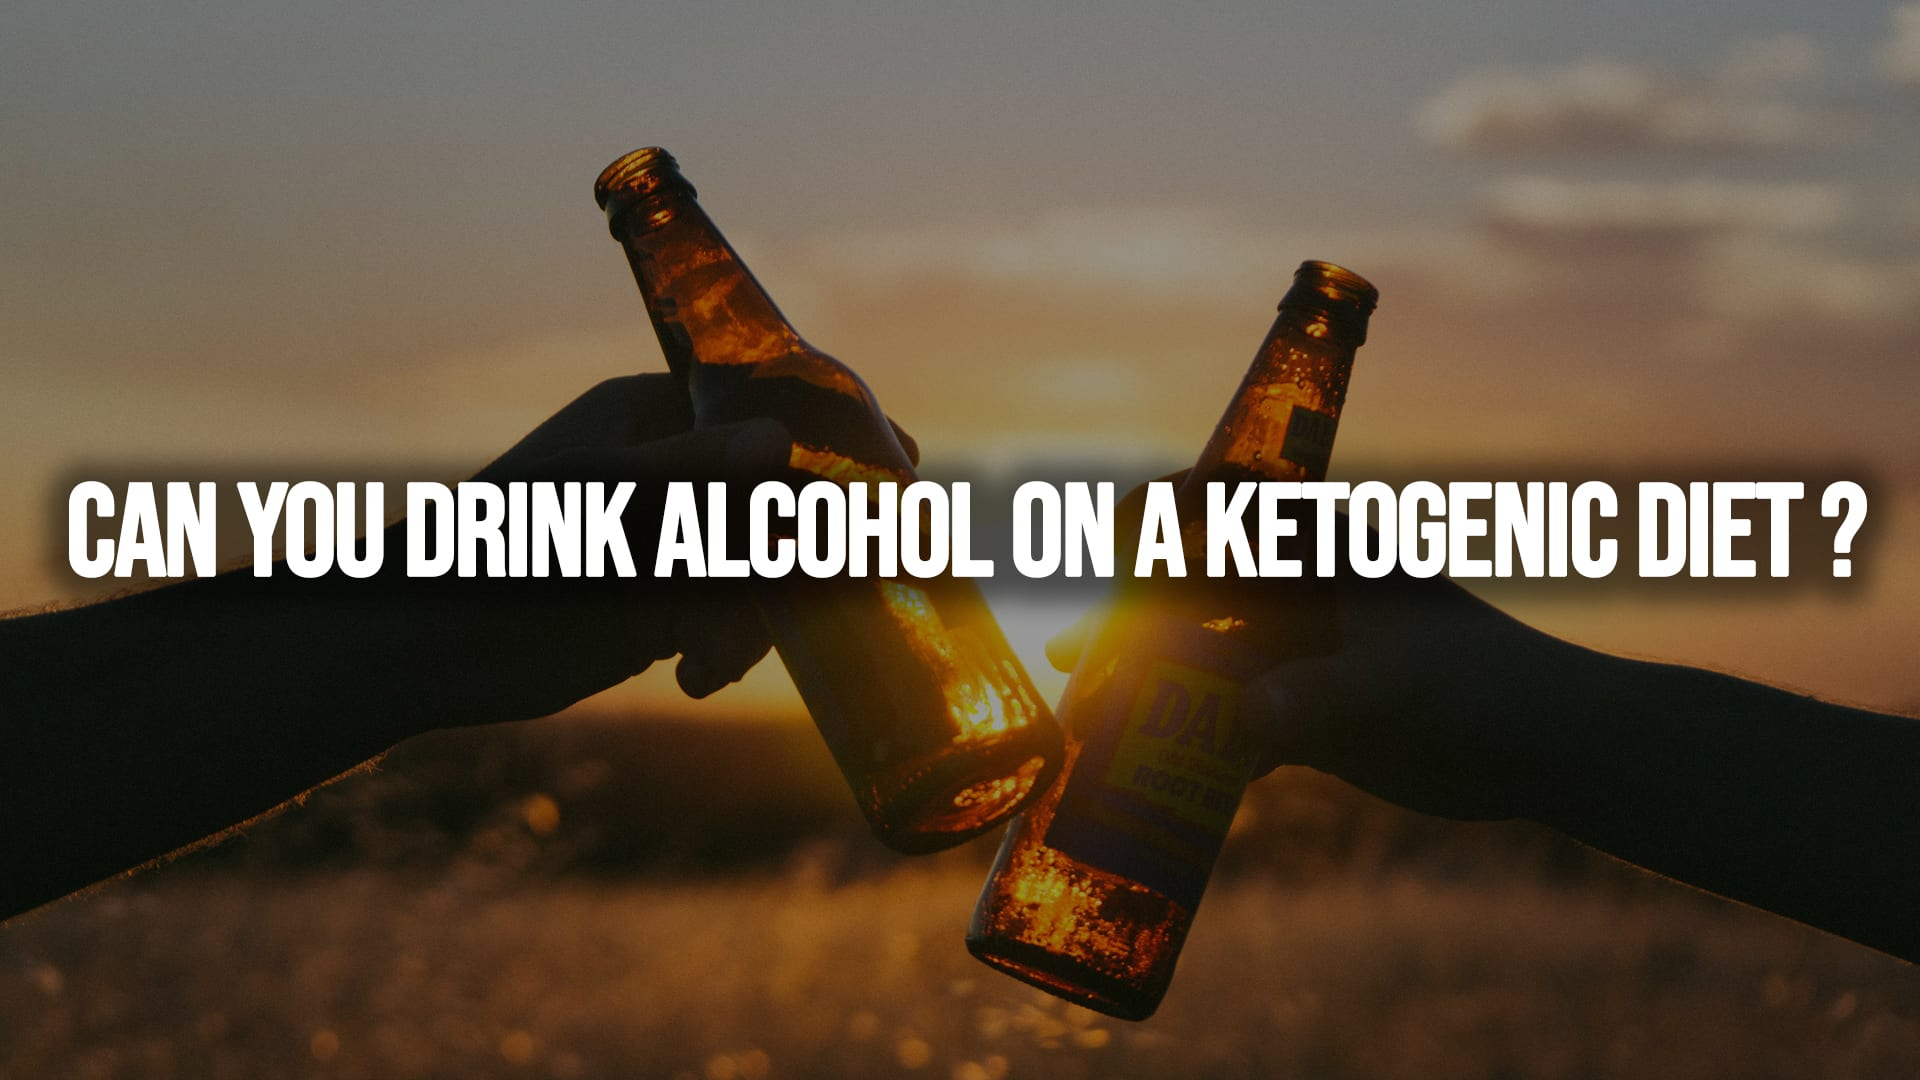 Can you Drink Alcohol on a Ketogenic Diet?